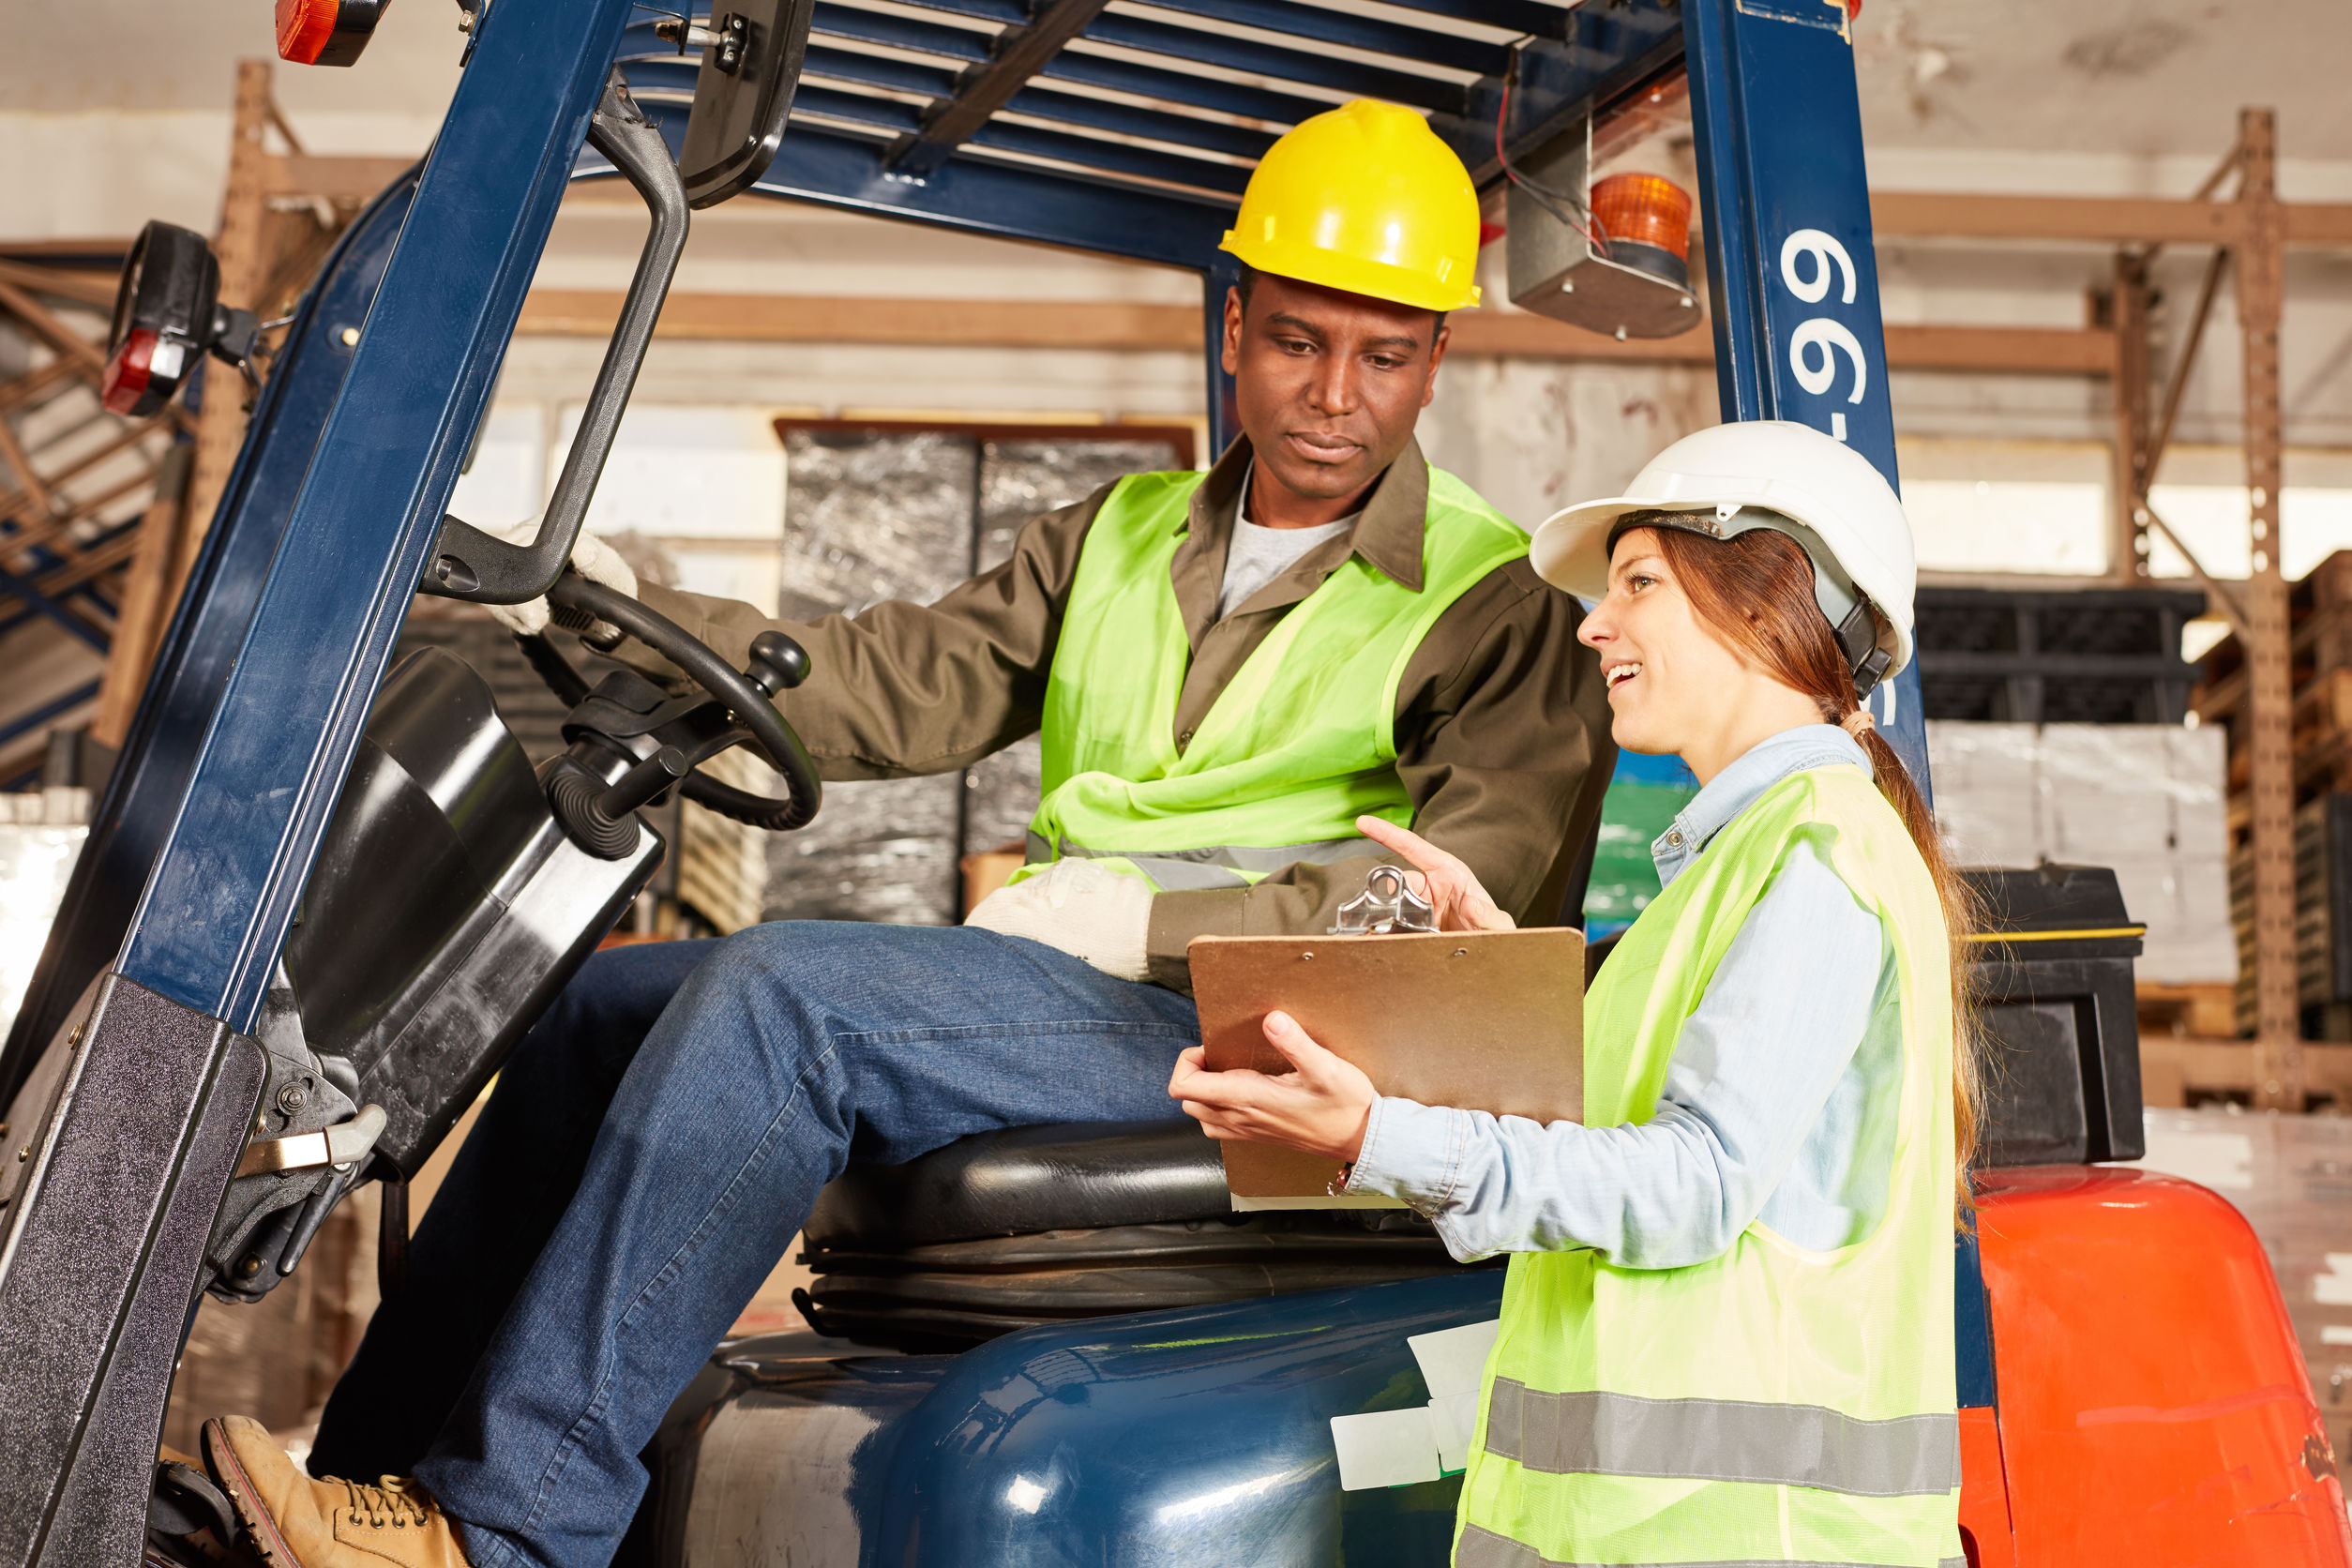 Essential Supply Chain Workers